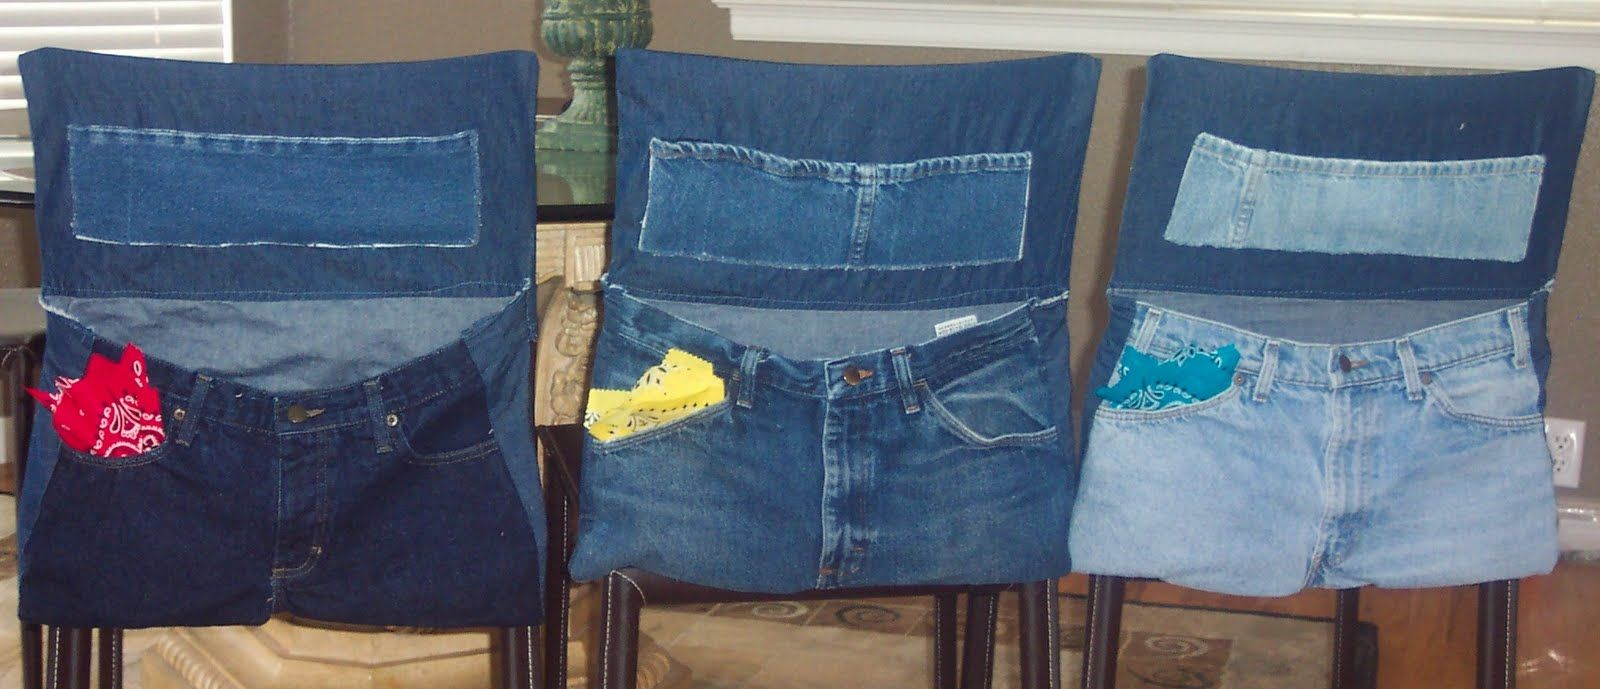 Chair Back Storage Bags for Schoolchildren out of Jeans ...